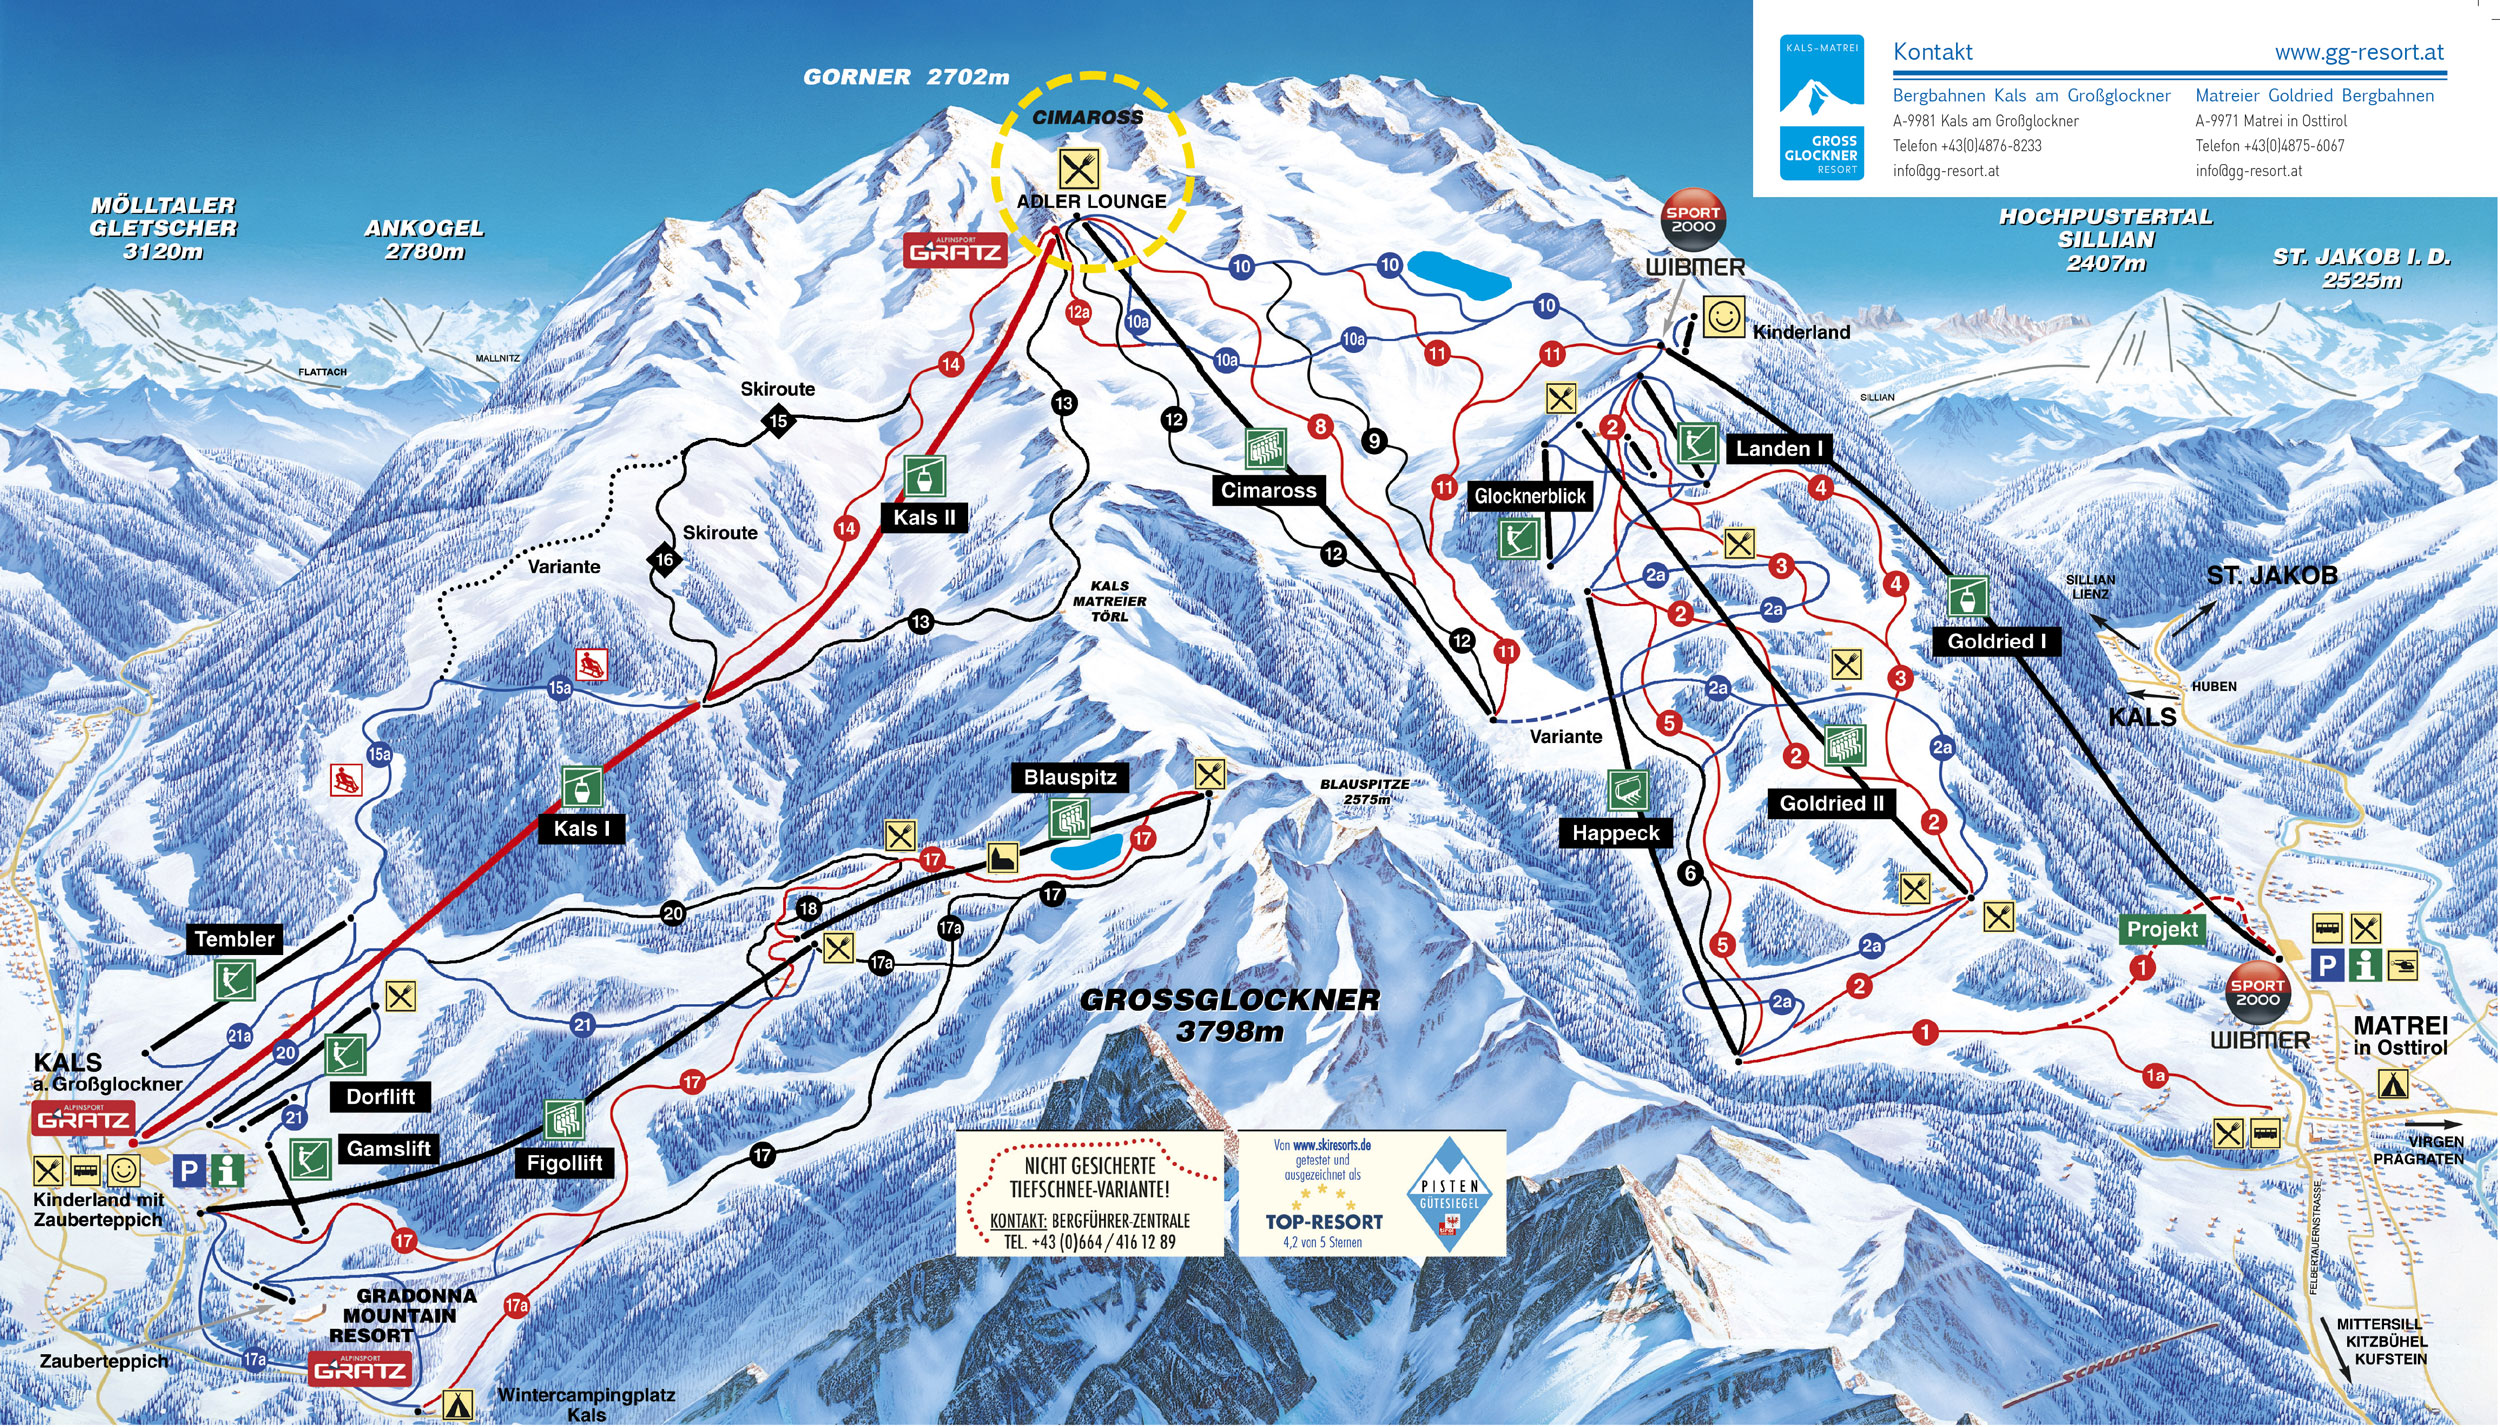 Matrei in Osttirol piste map